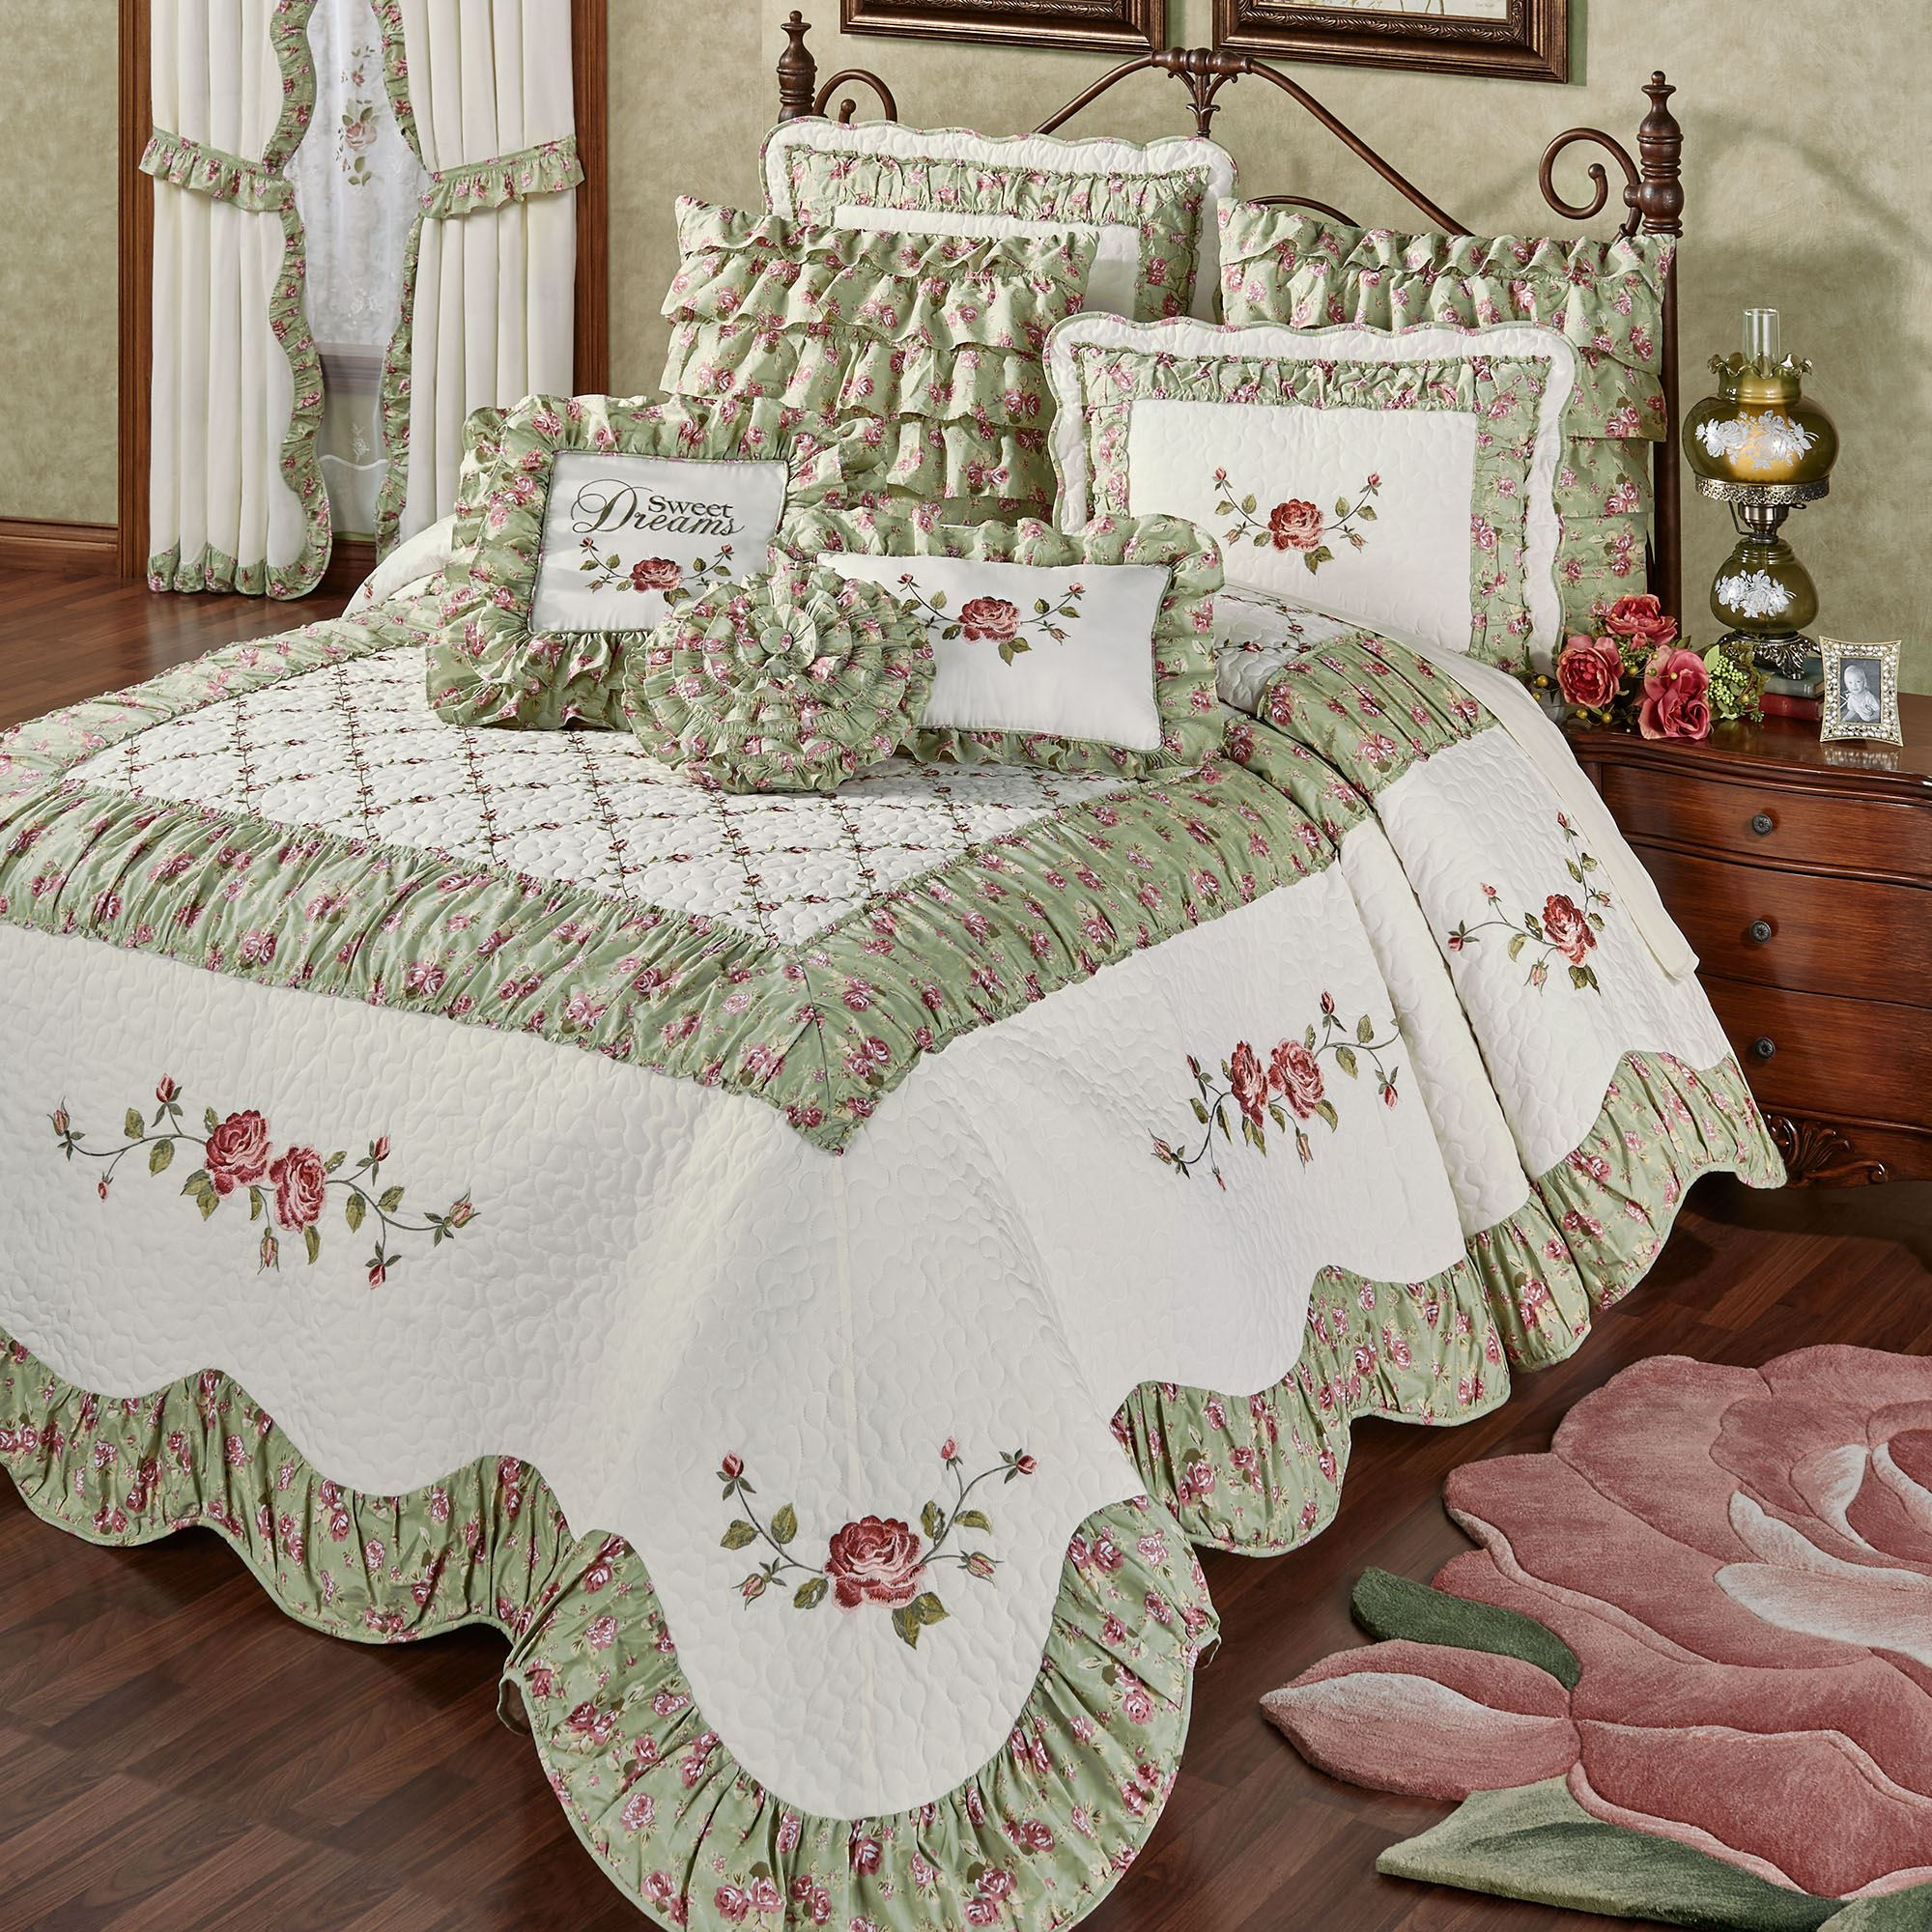 Cordial Garden Floral Quilted Oversized Bedspread